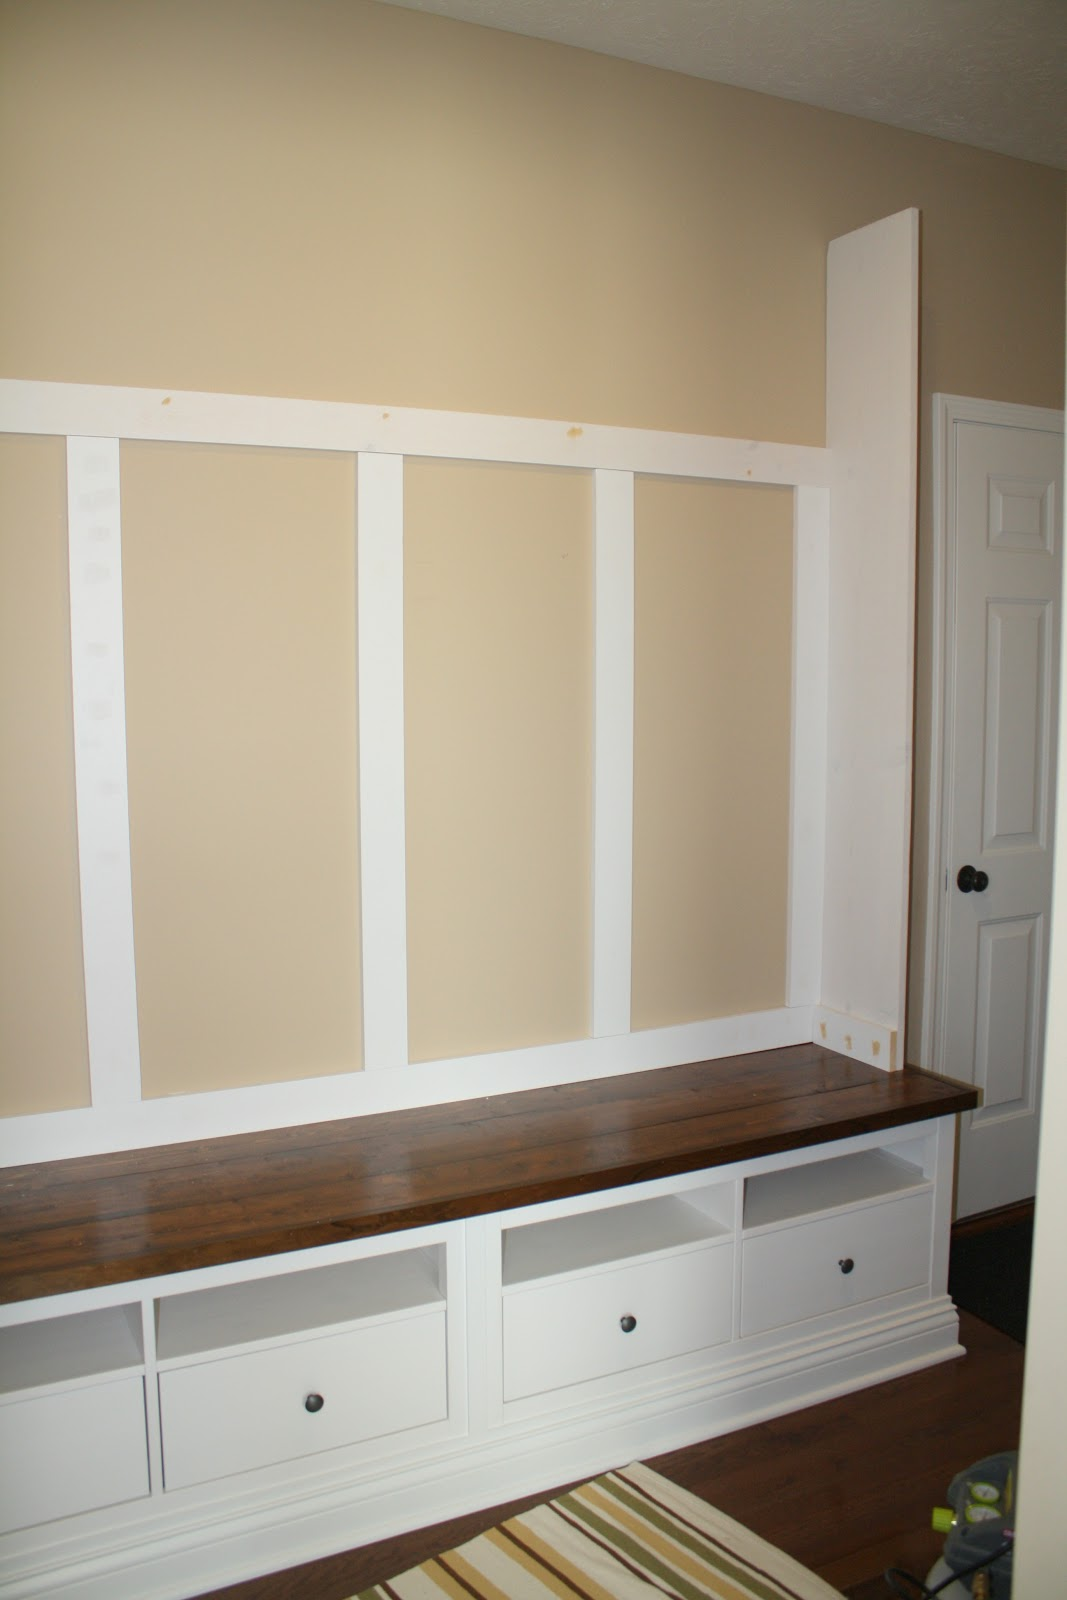 Mudroom Storage Units Ikea : Making mudroom storage from an ikea hack